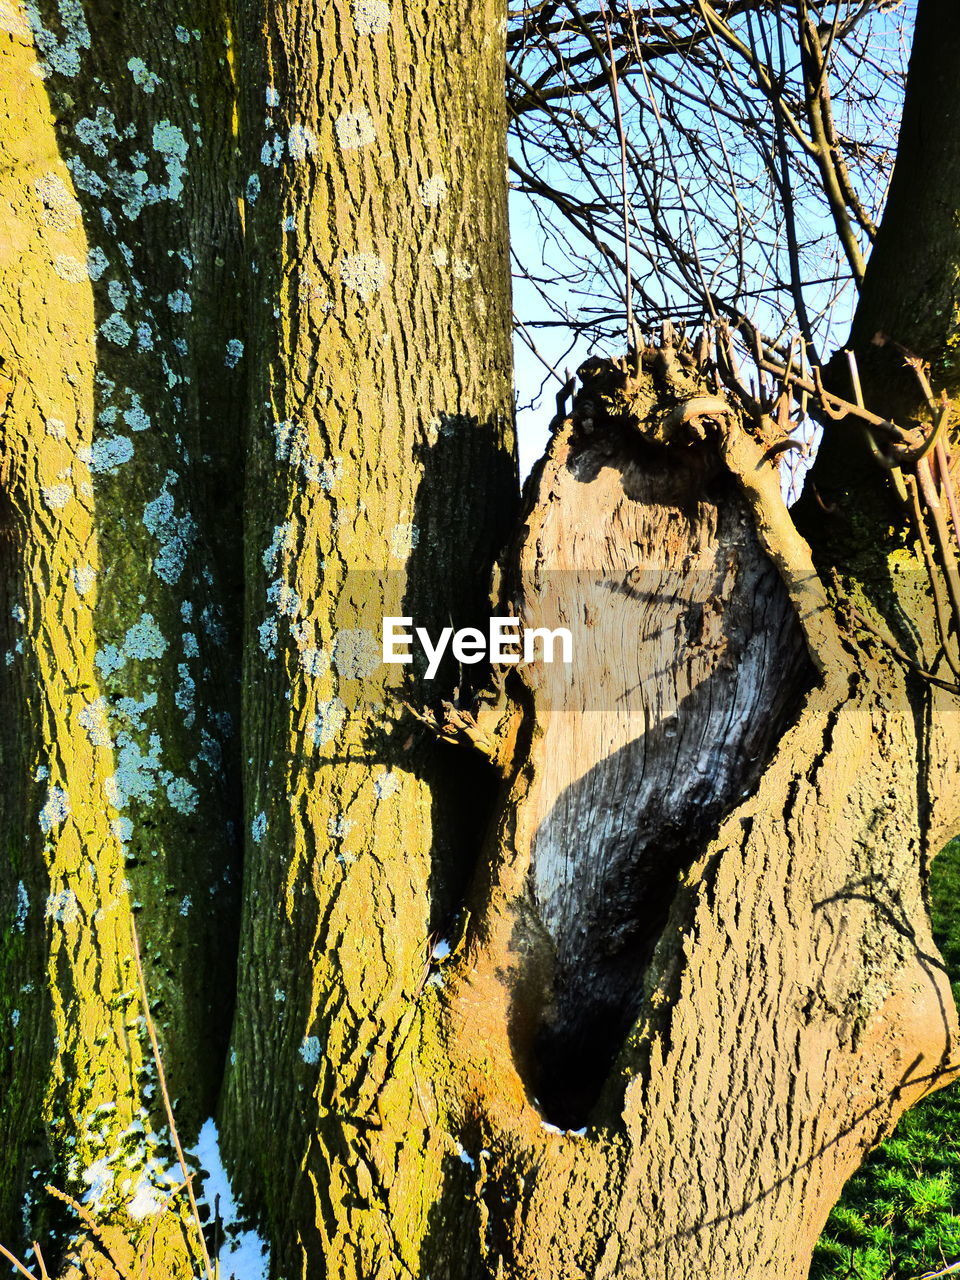 tree, tree trunk, branch, day, bark, outdoors, nature, no people, textured, close-up, bare tree, sunlight, yellow, forest, beauty in nature, sky